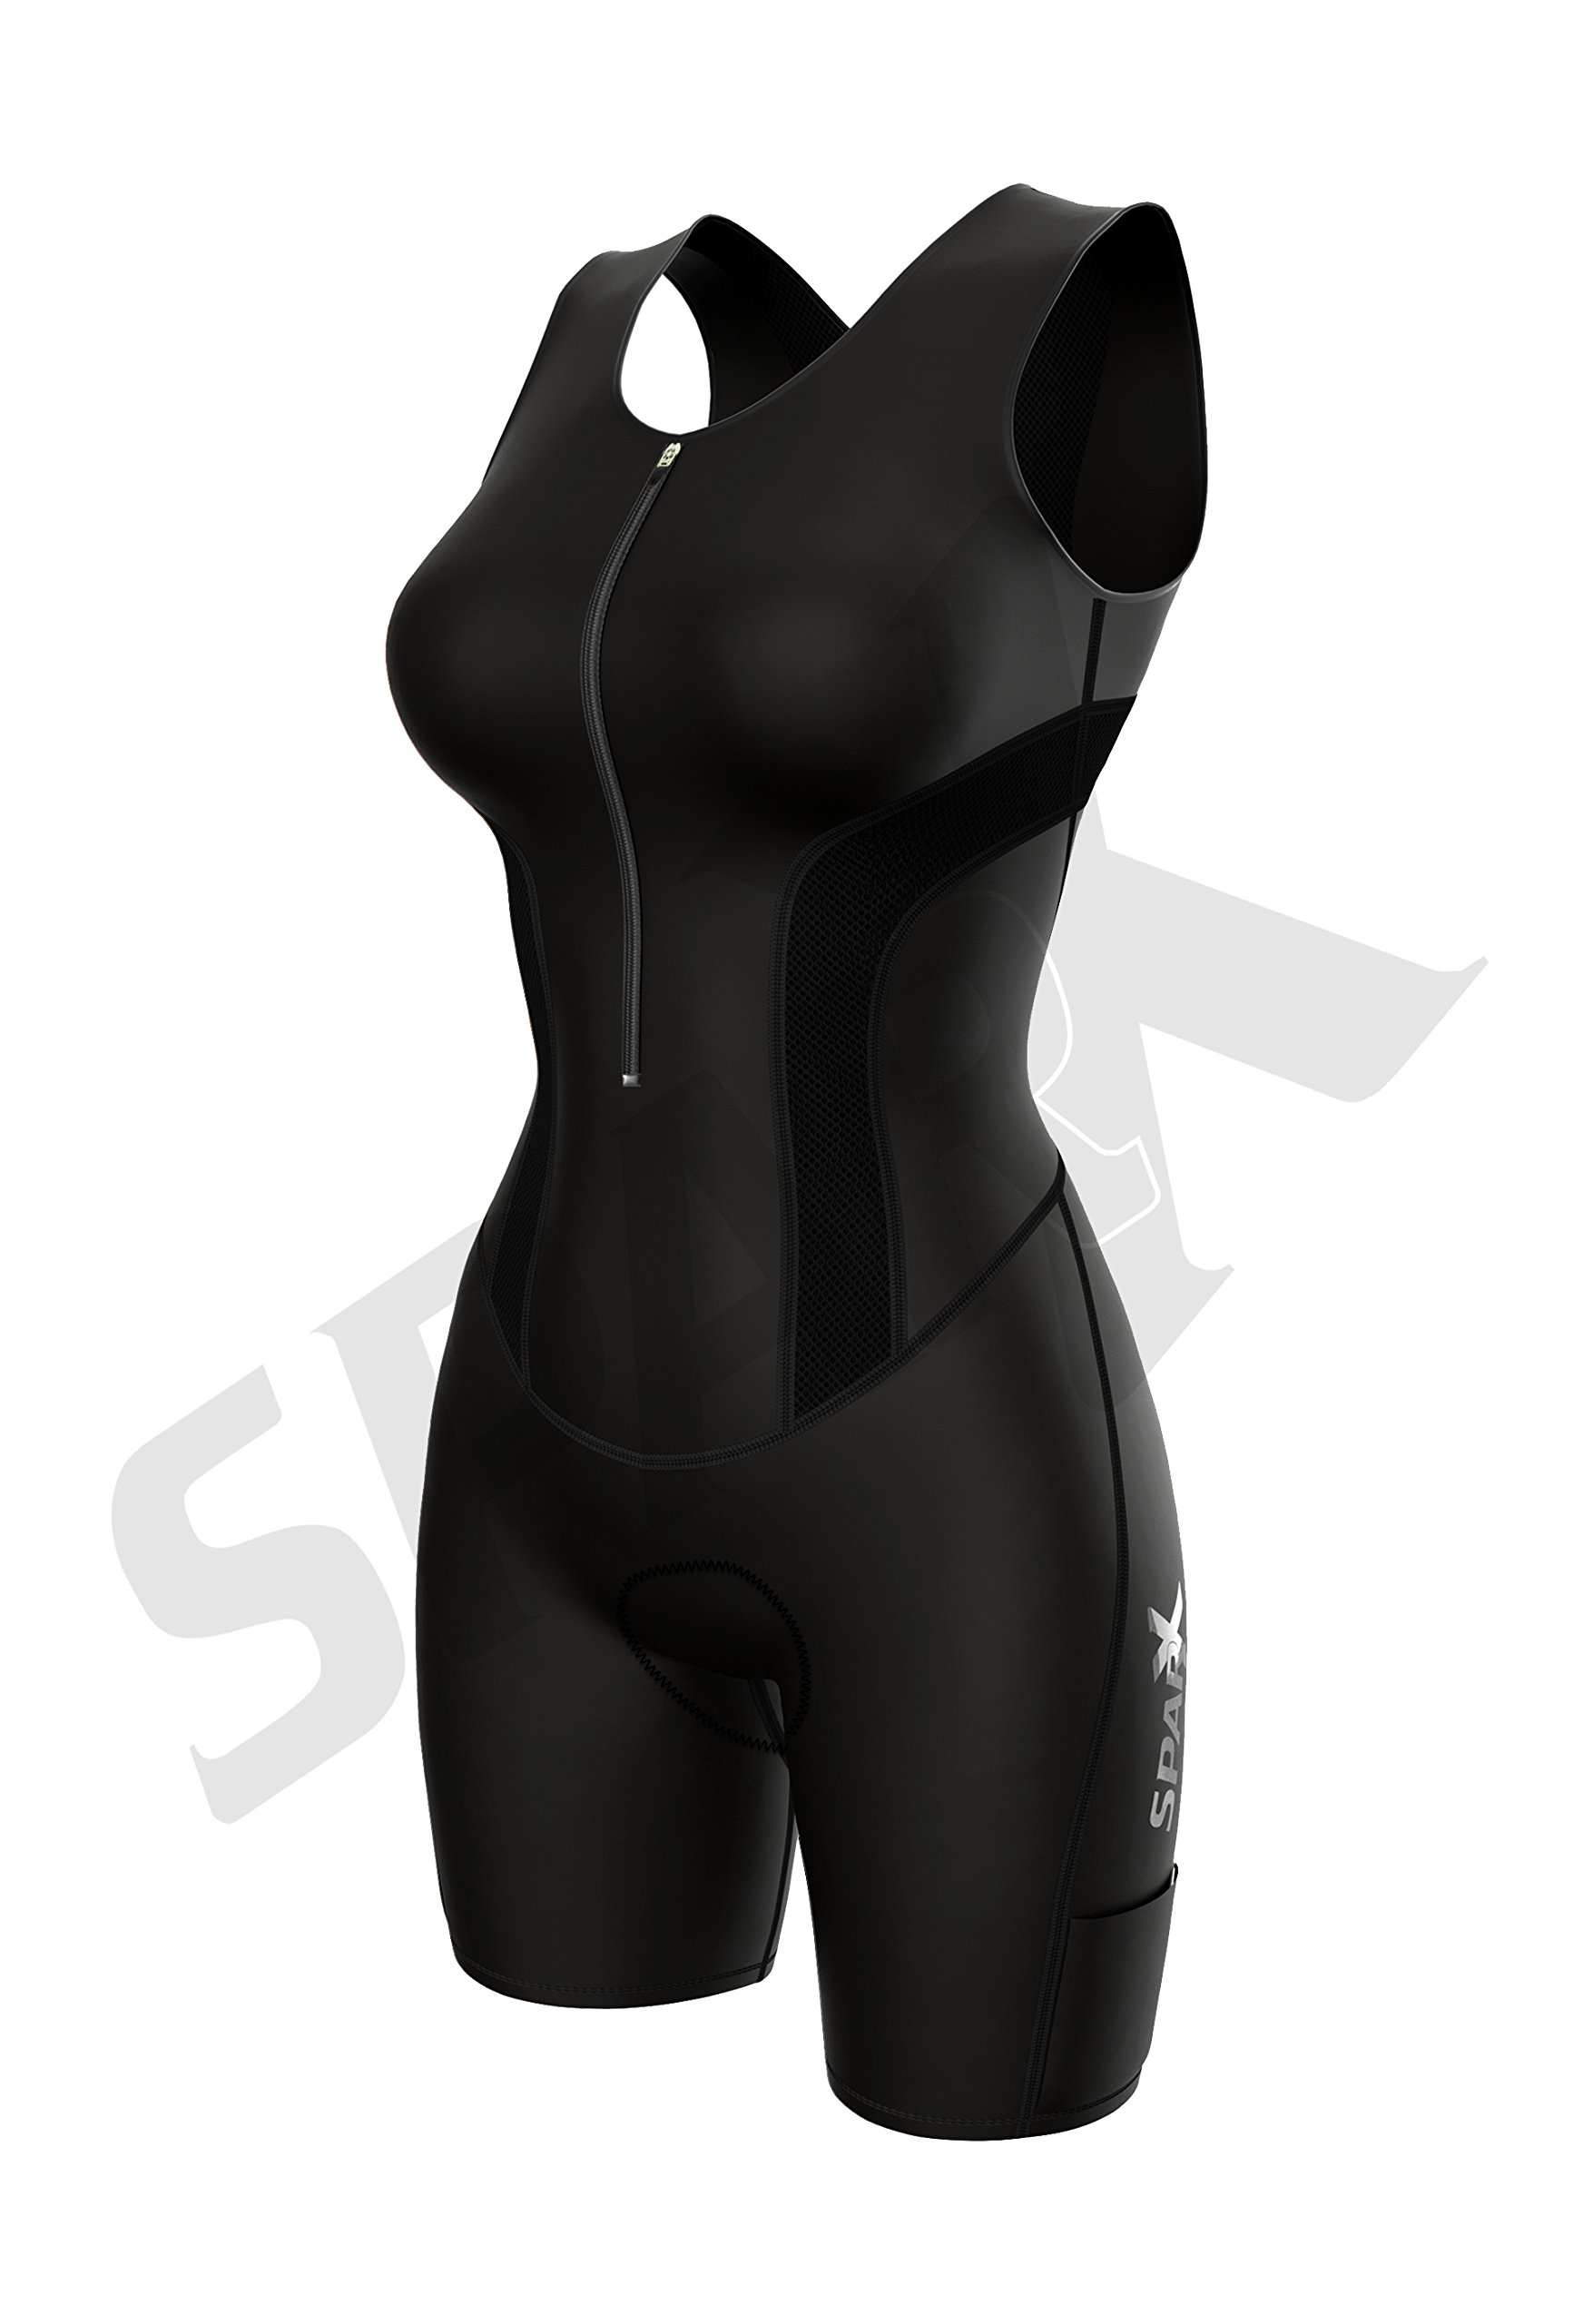 Sparx Women Triathlon Suit Tri Short Racing Cycling Swim Run (Small, Black) by Sparx Sports (Image #2)